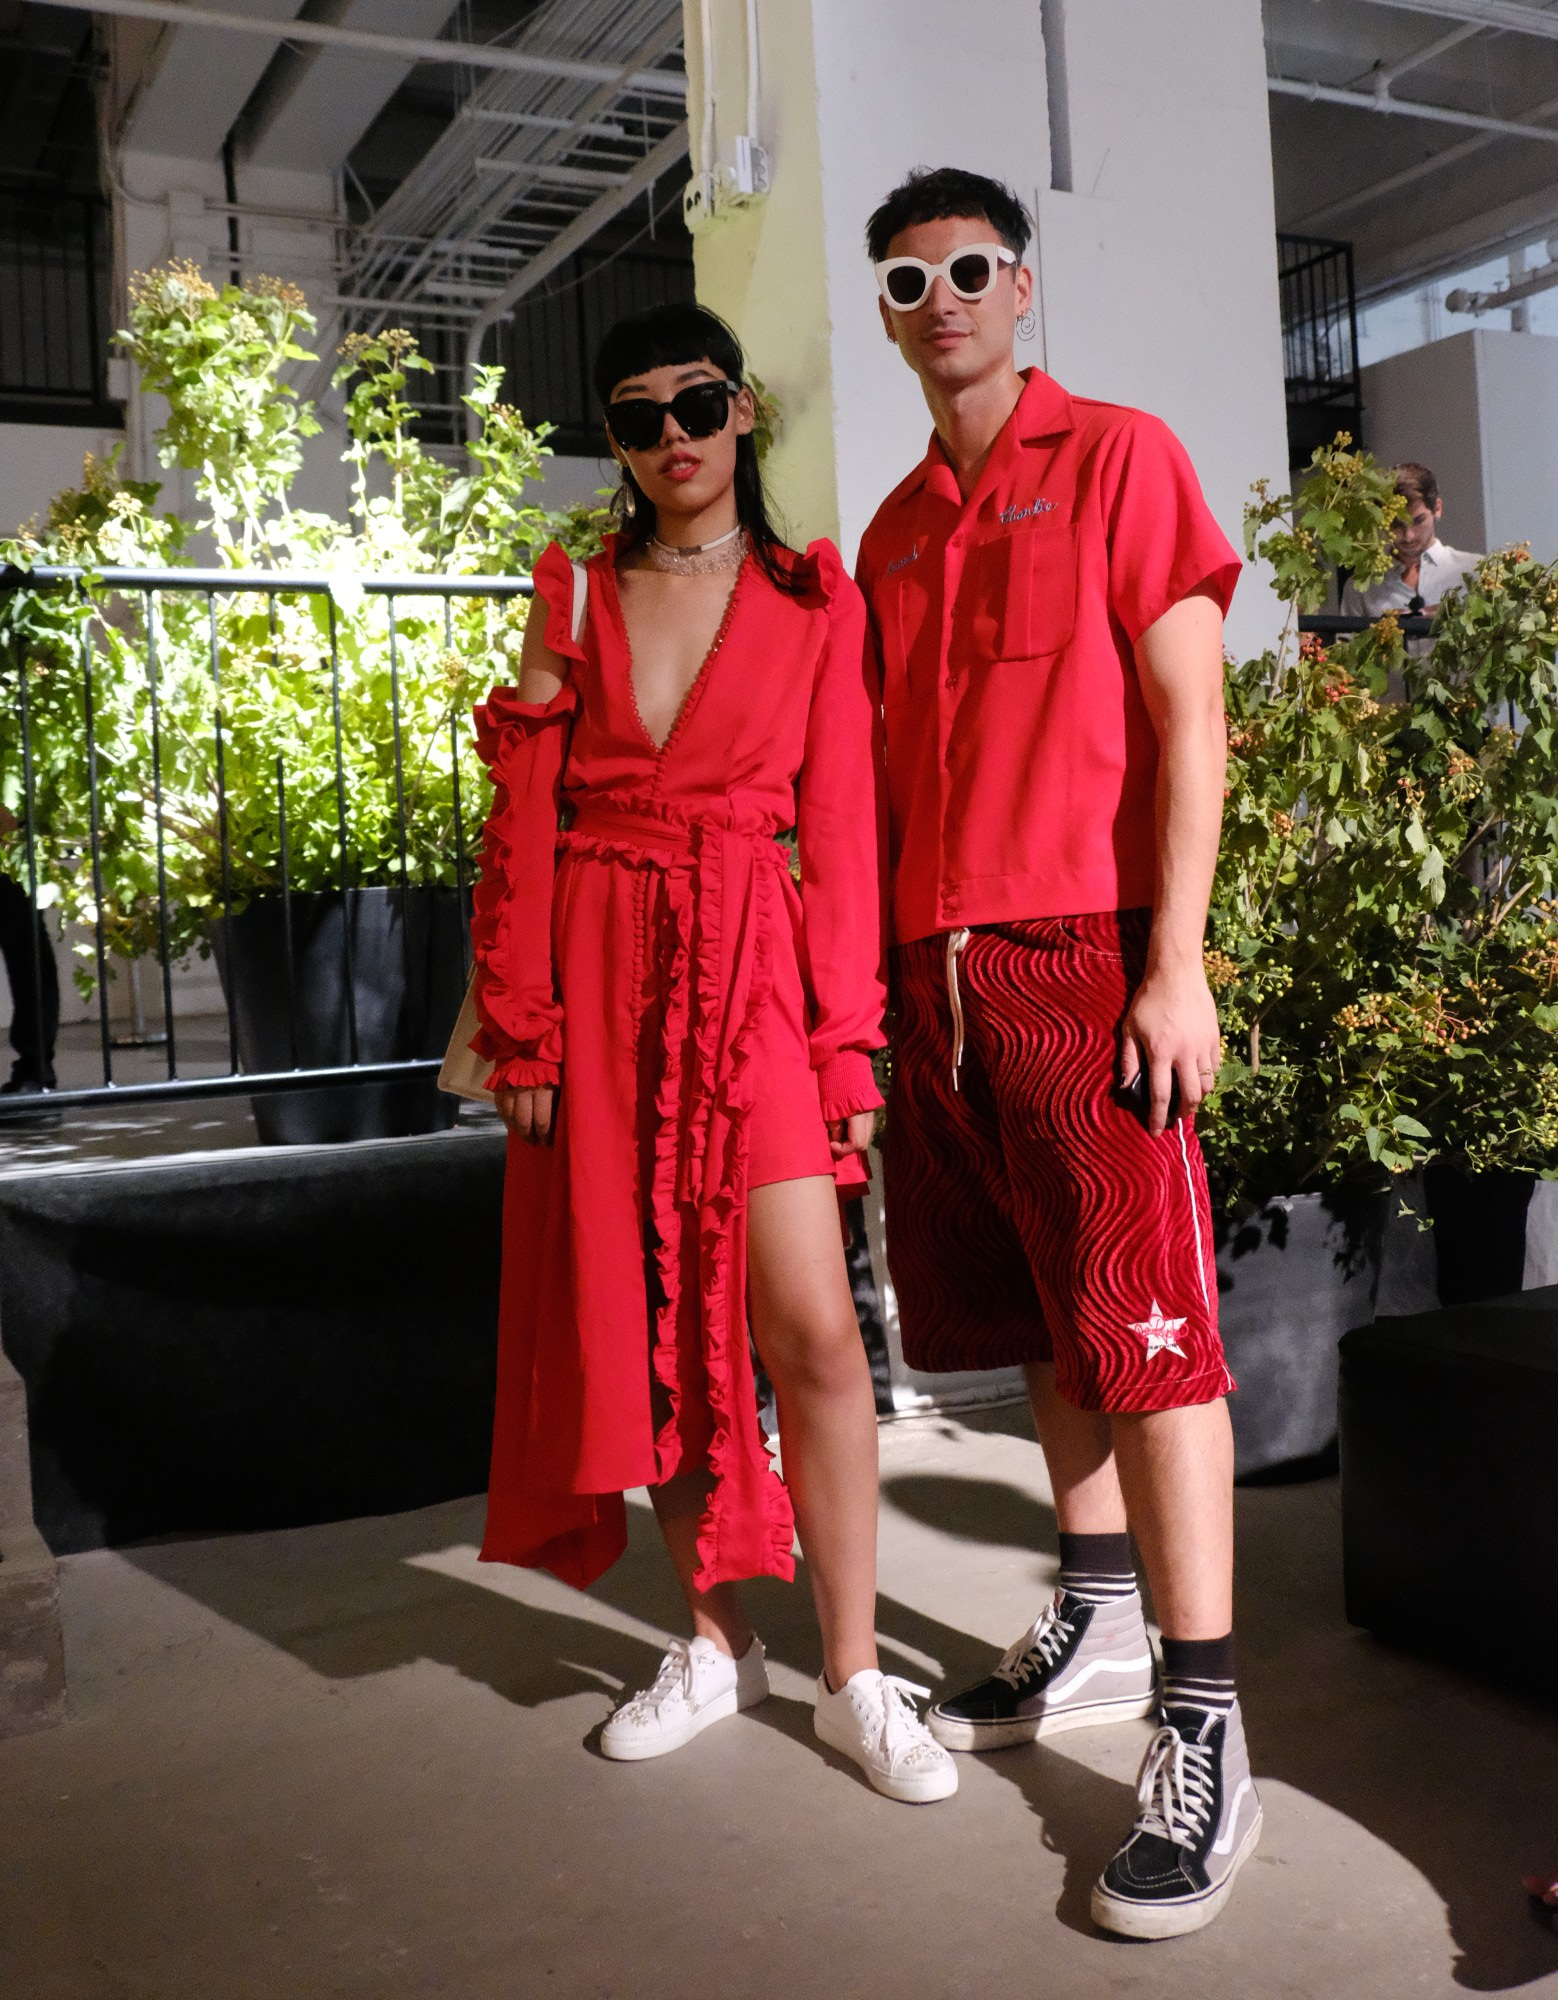 2 fashionistas dressed in red